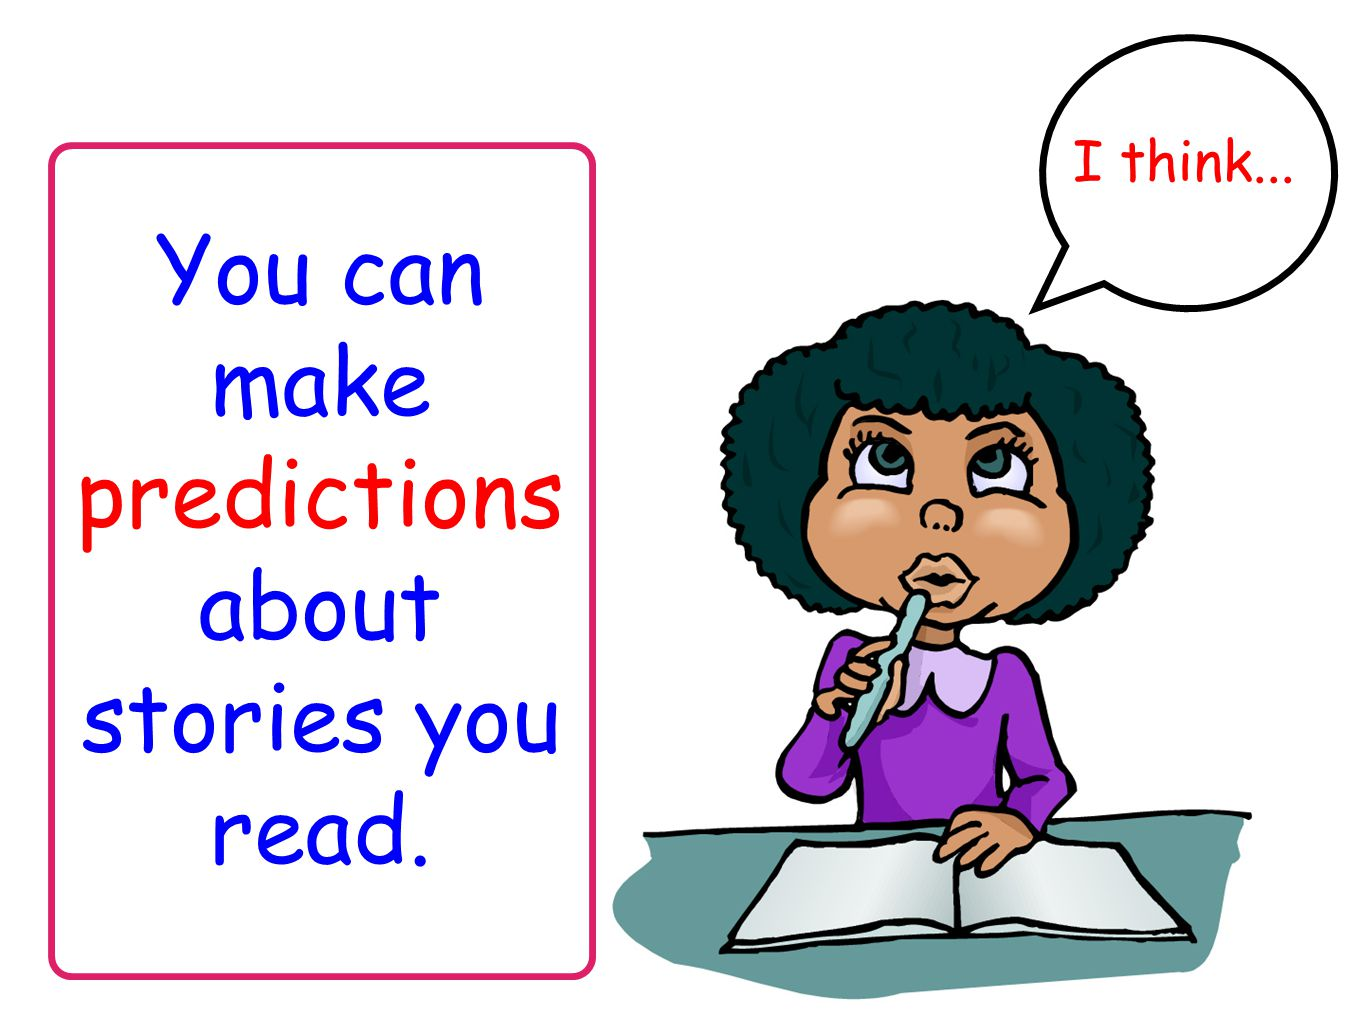 You can make predictions about stories you read. I think...